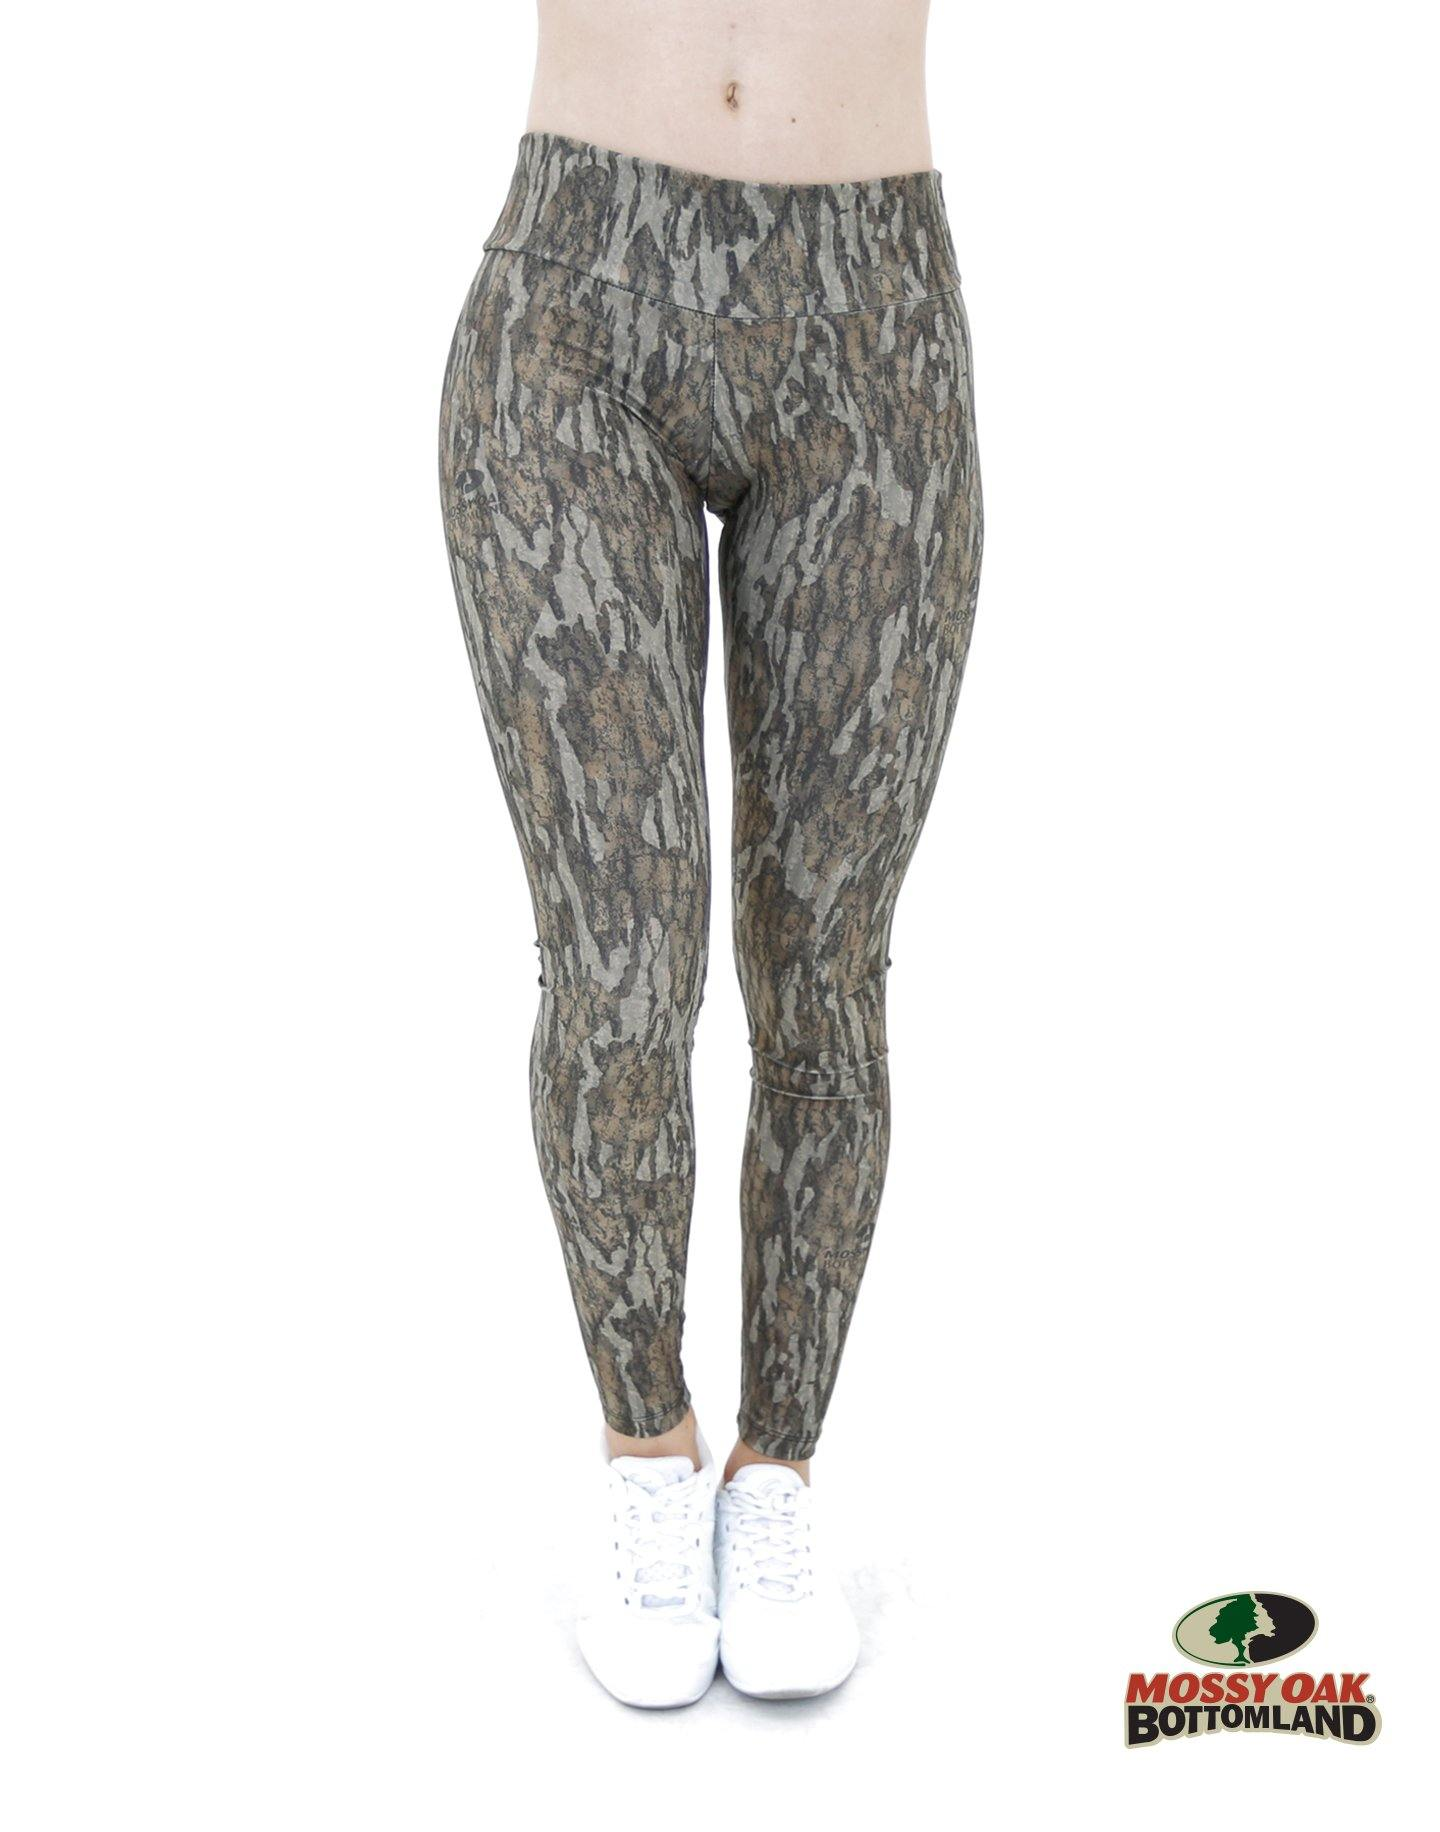 Apsara Leggings Low Waist Full Length, Mossy Oak Bottomland